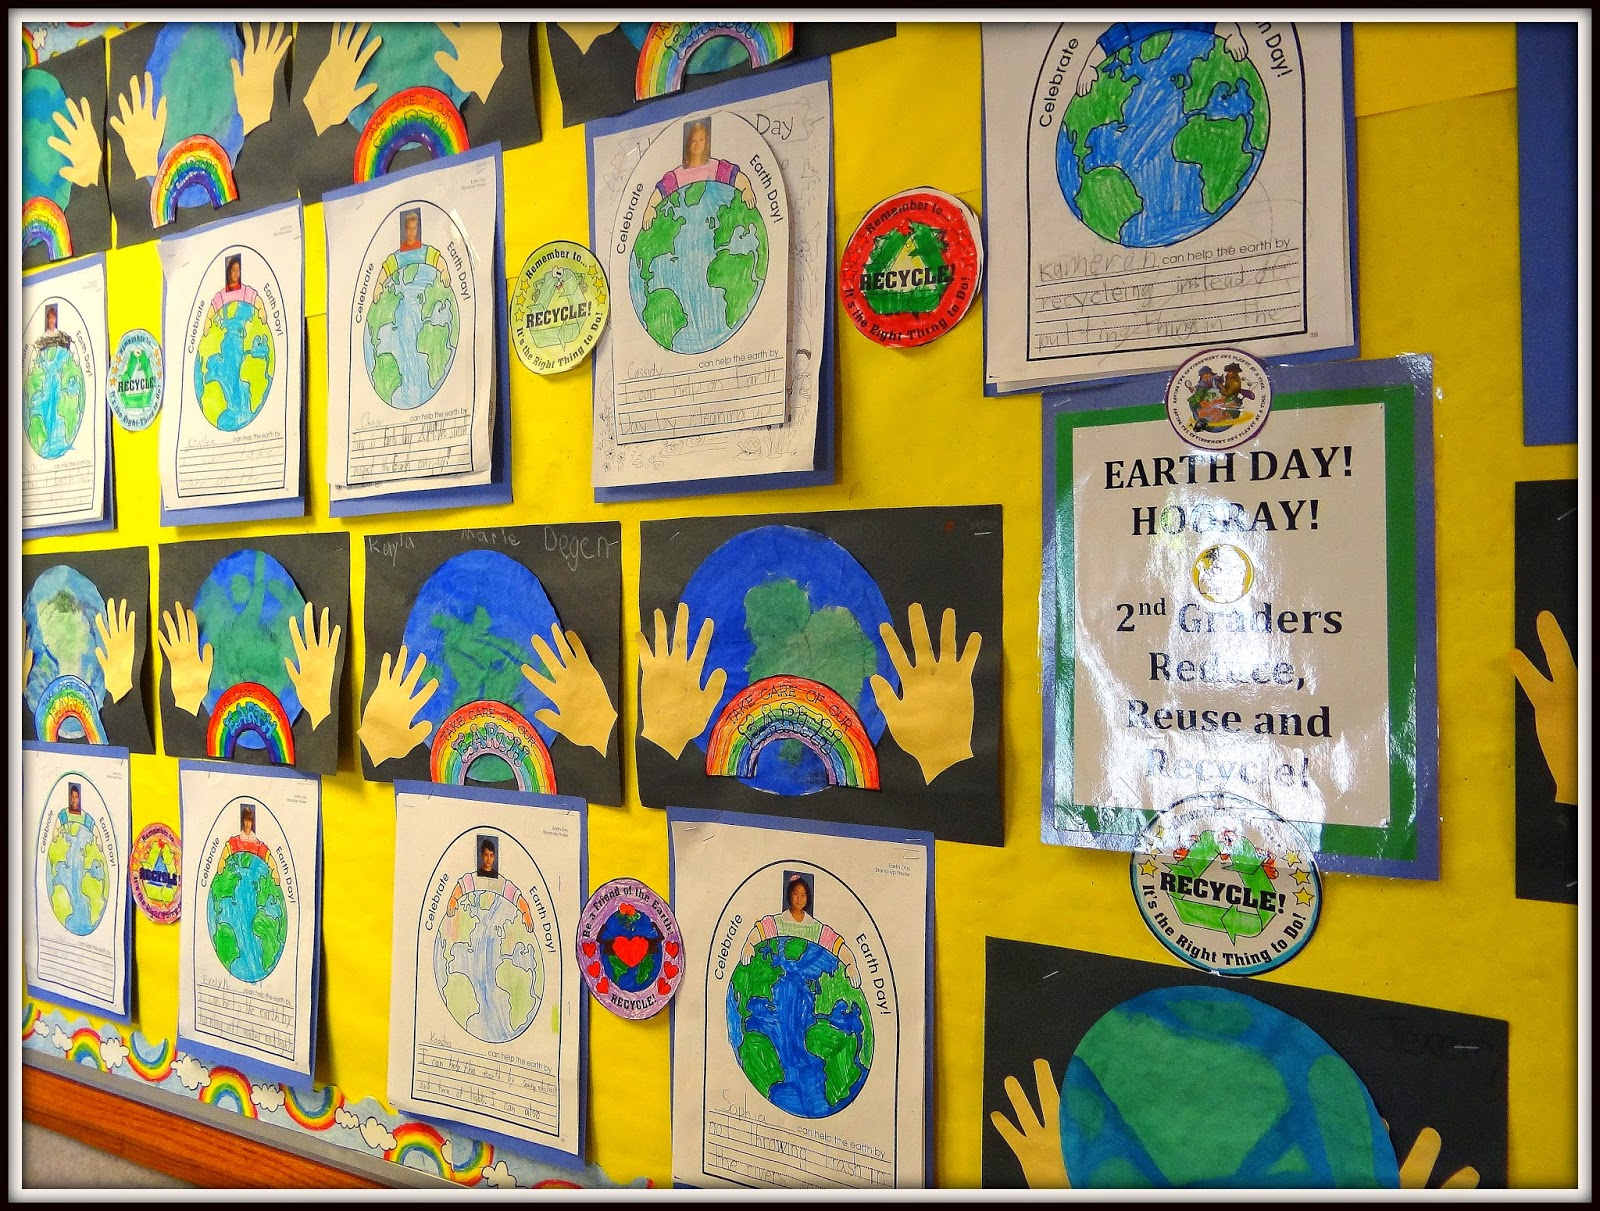 93+ Earth Day Celebration Ideas For Schools - Prep For Earth Day